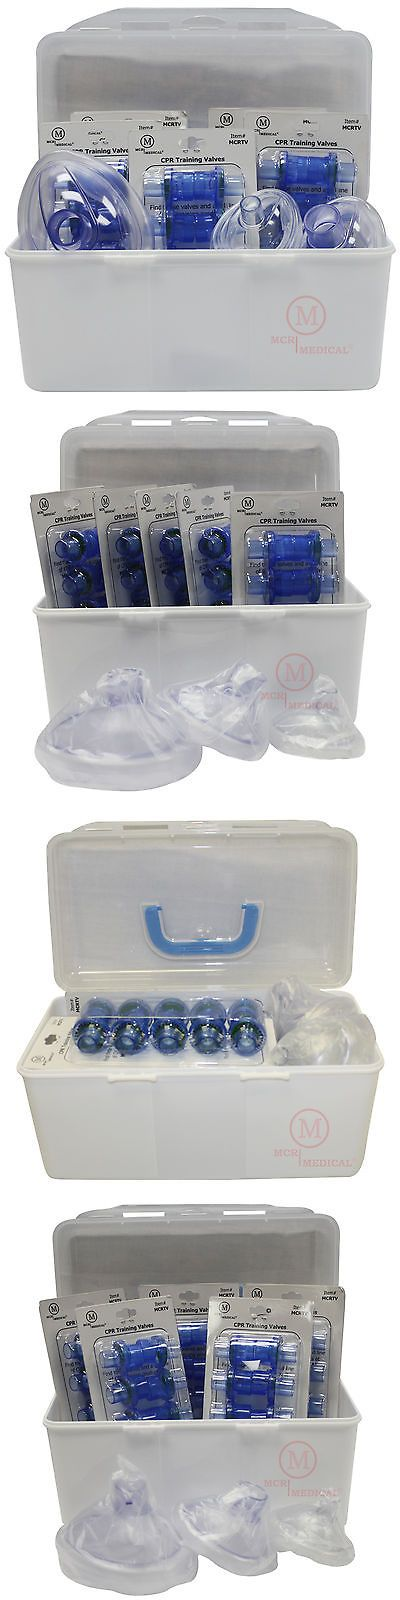 Kits and Bags: 50 Pack Cpr Training Valves - For Pocket Rescue Mask Training With Cpr Manikins BUY IT NOW ONLY: $49.95